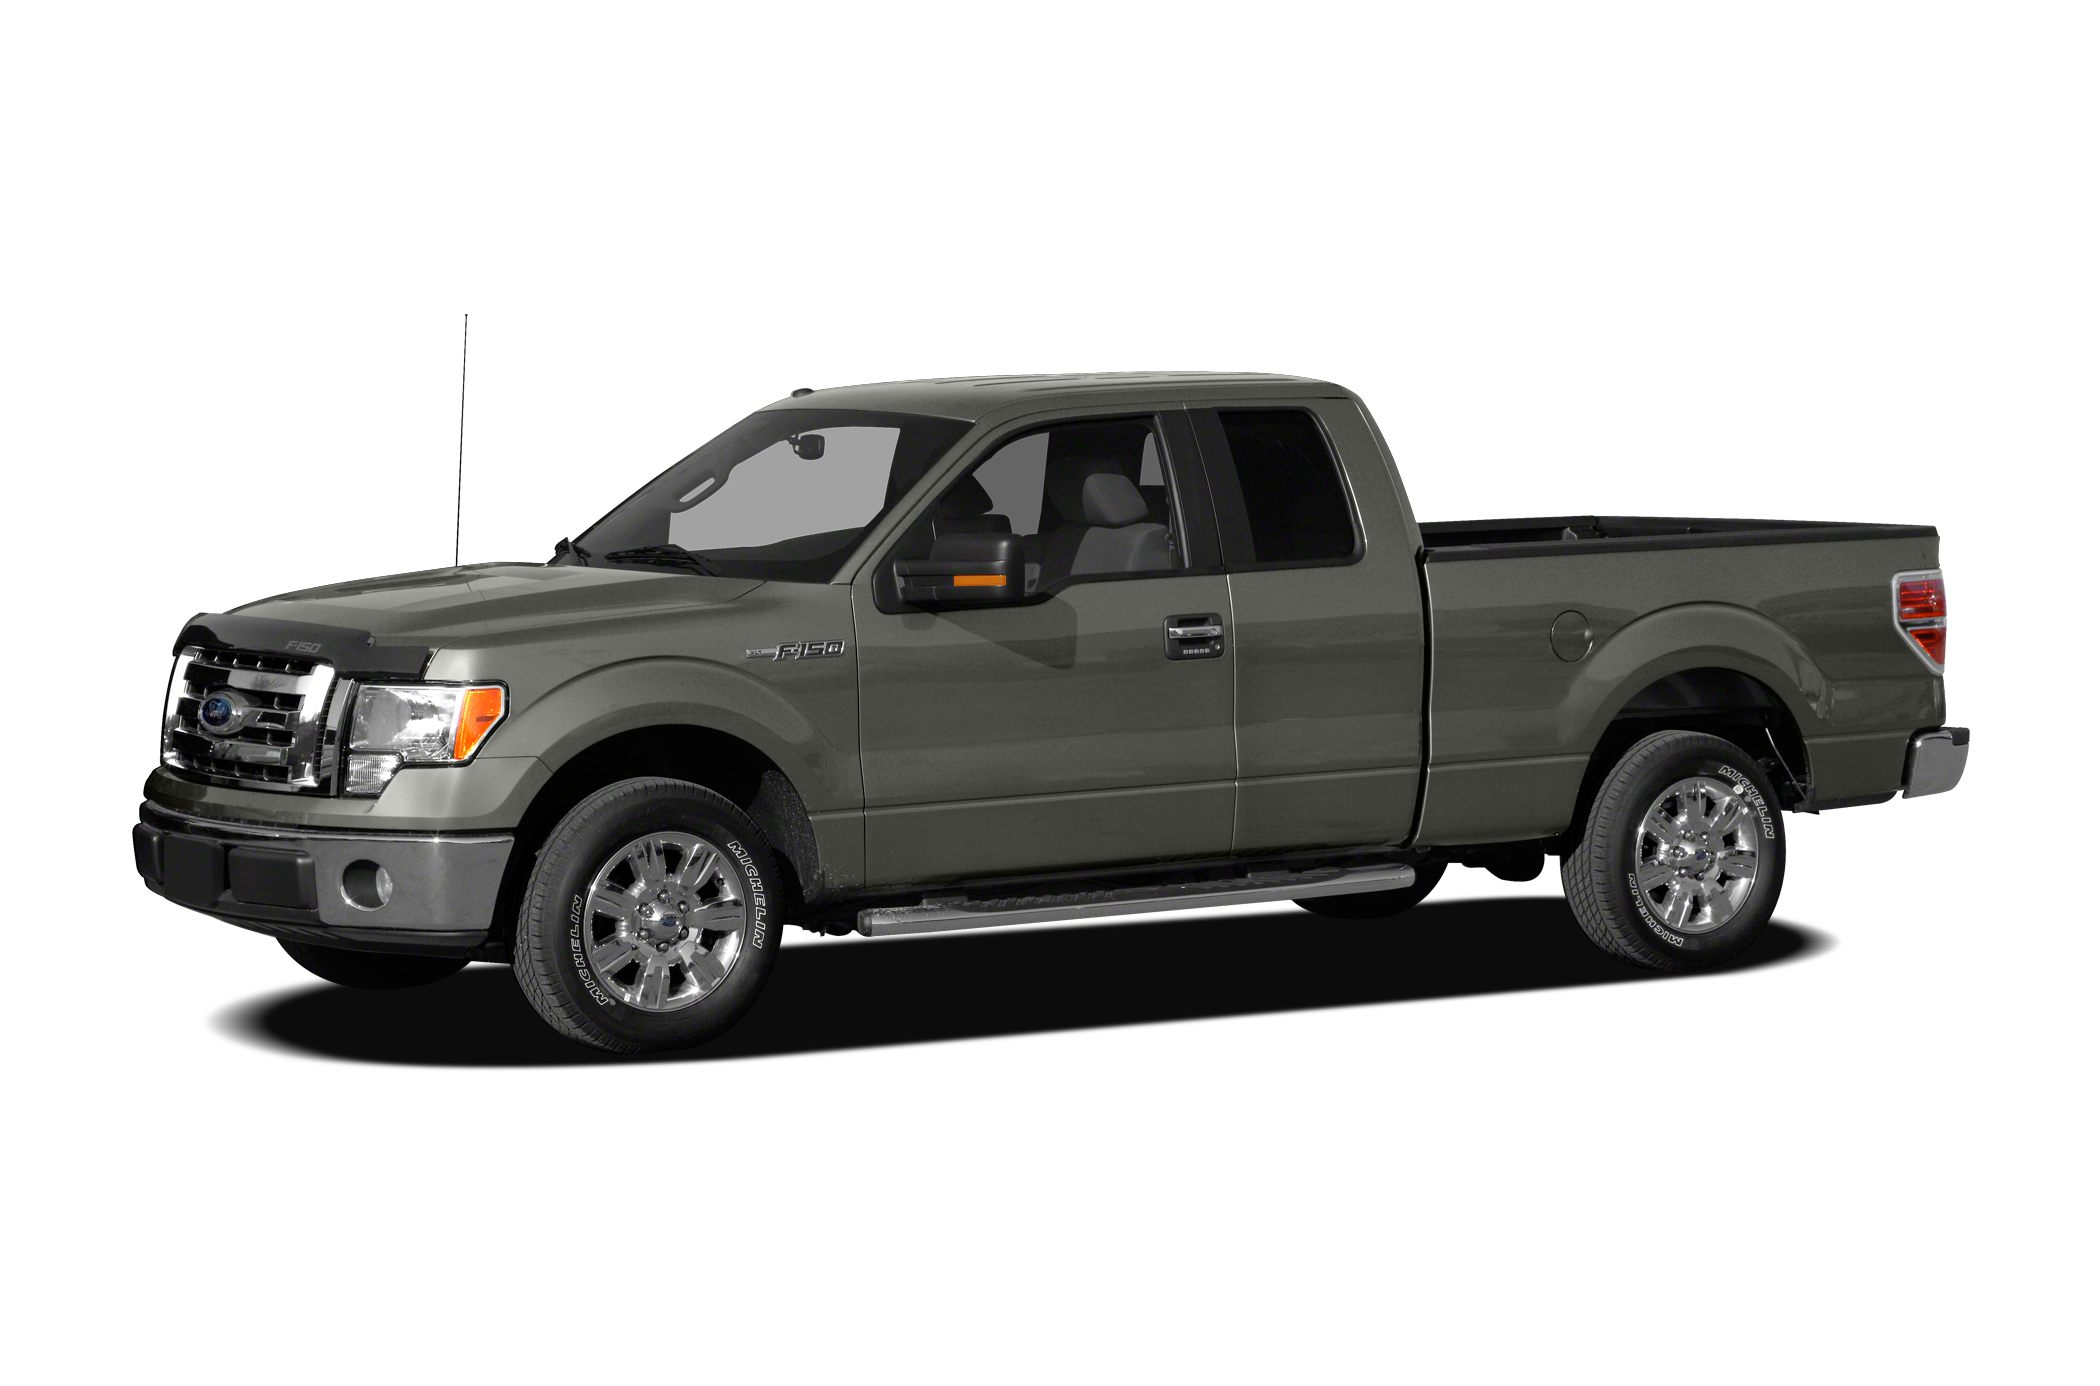 2012 Ford F150 Lariat Crew Cab Pickup for sale in Norman for $33,999 with 62,207 miles